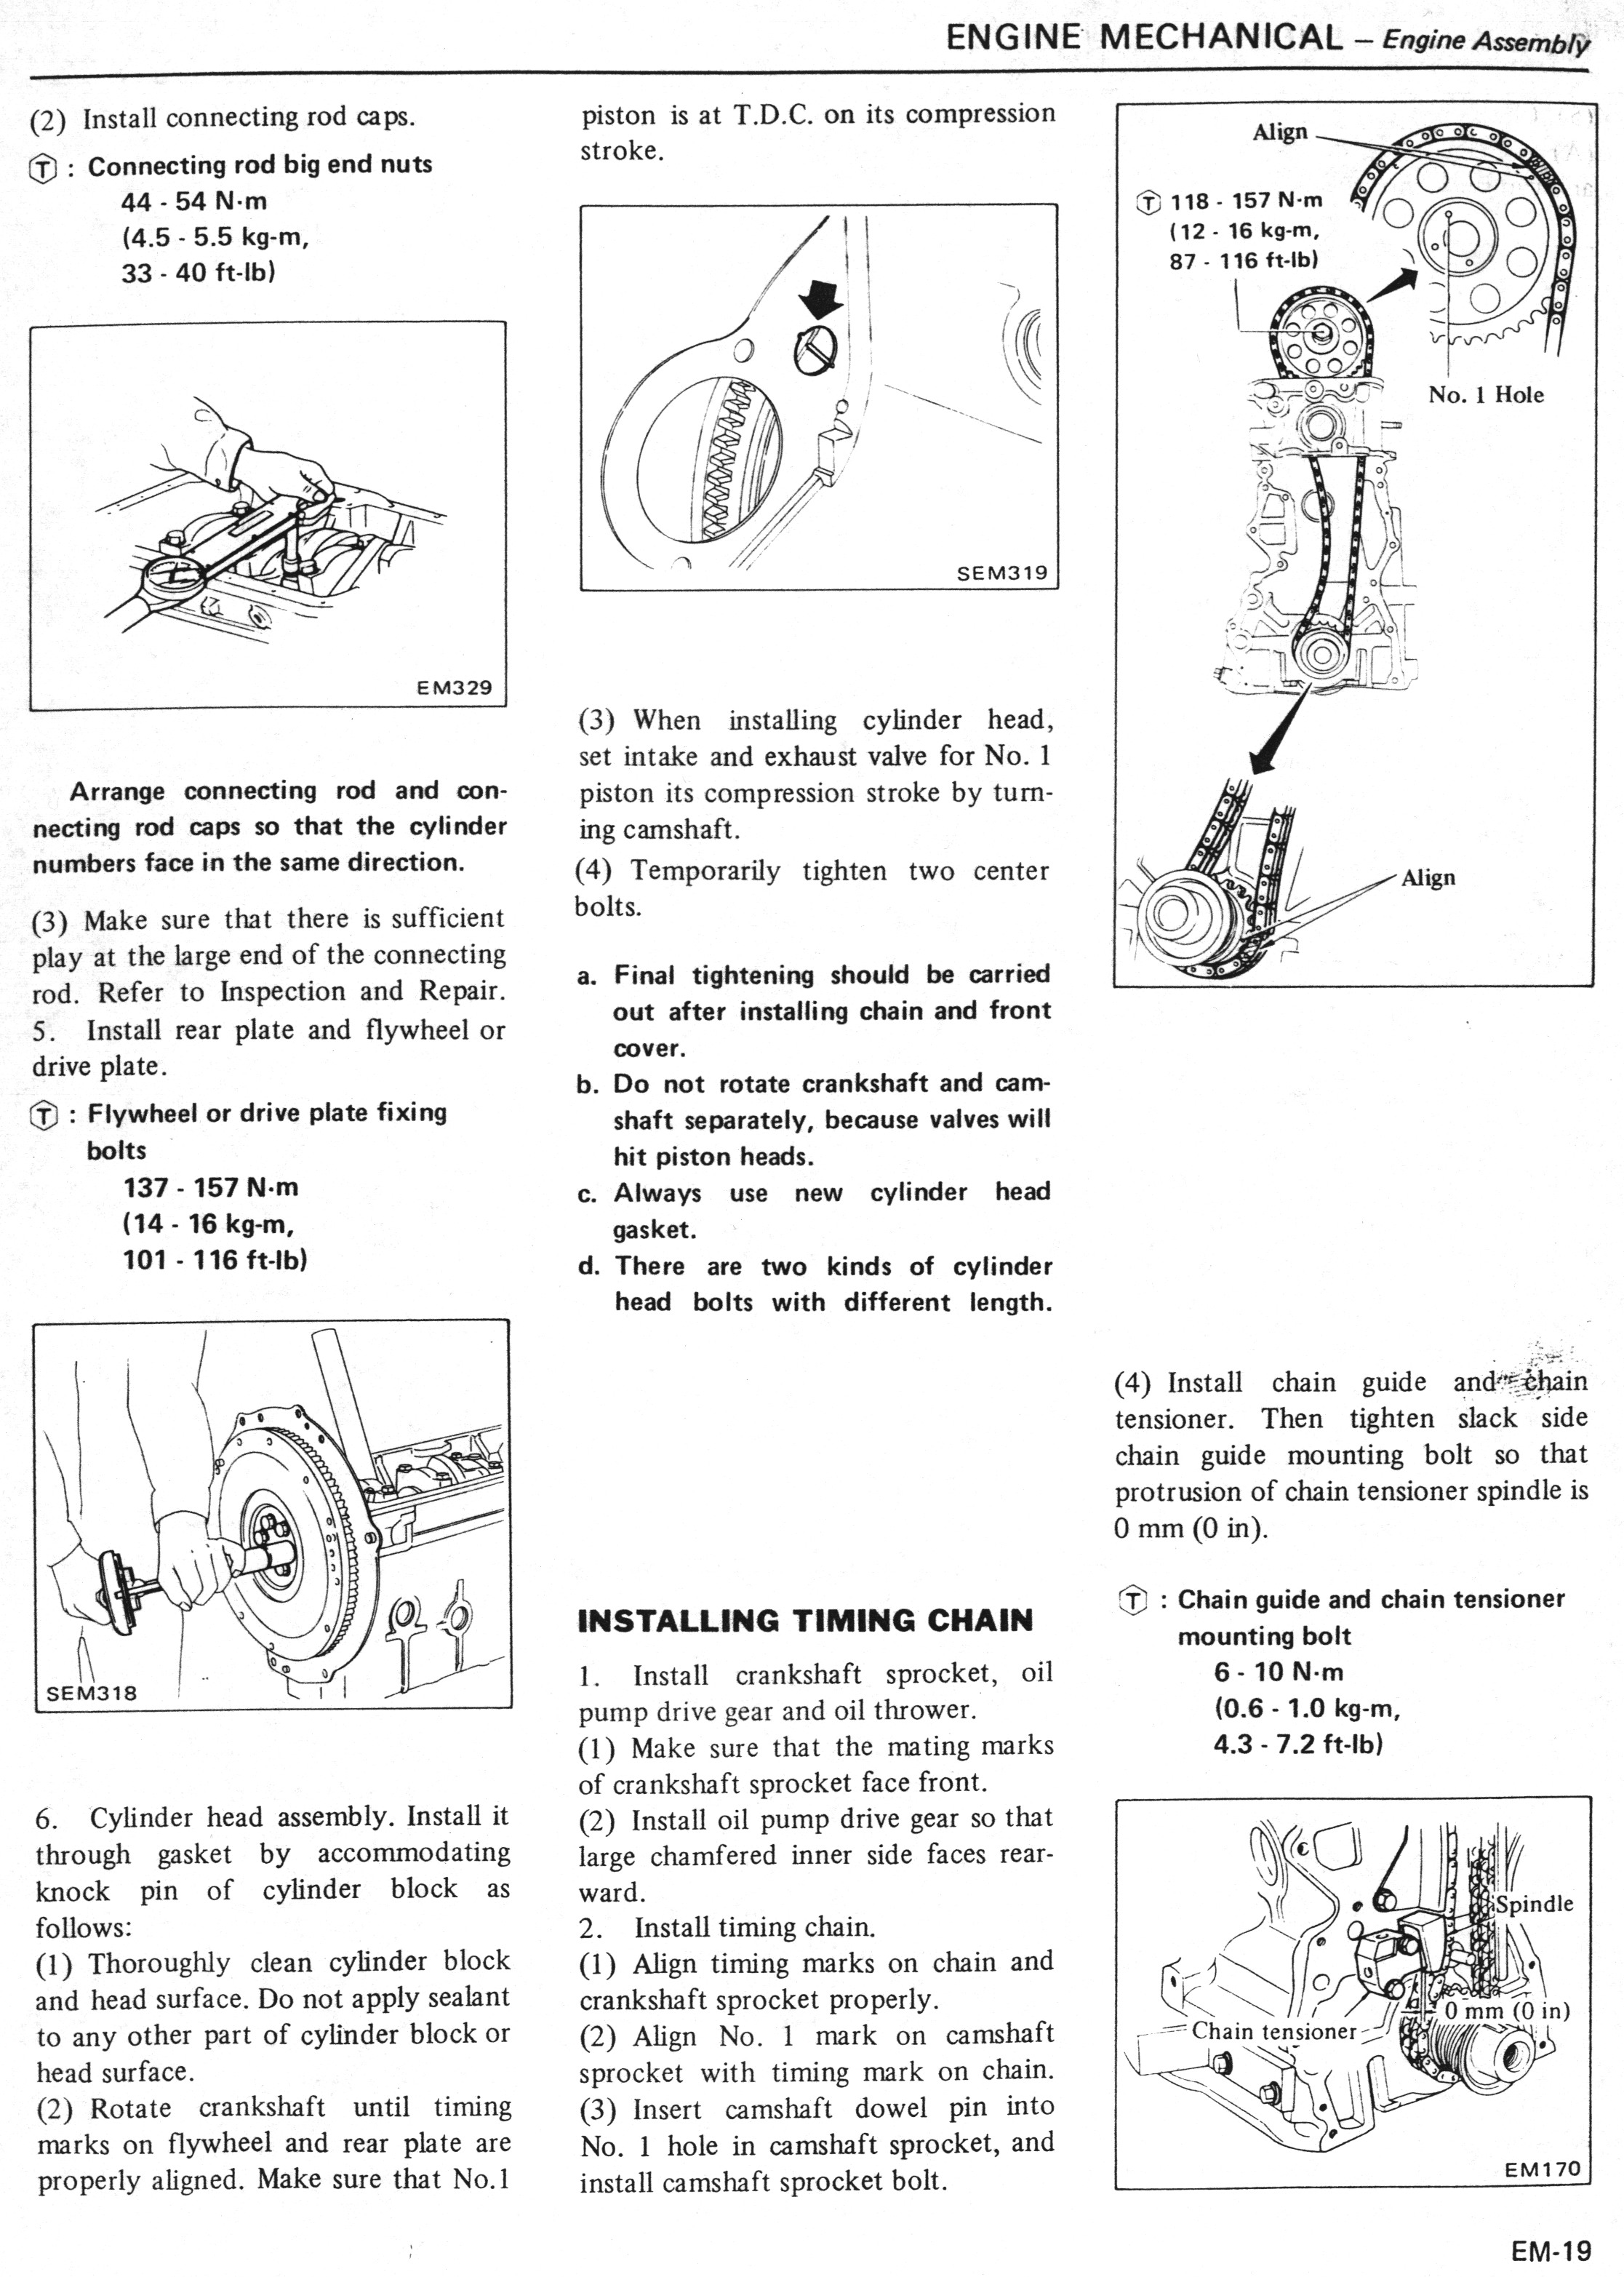 Nissan Ld28 Manual Diesel Engine Schematics 2